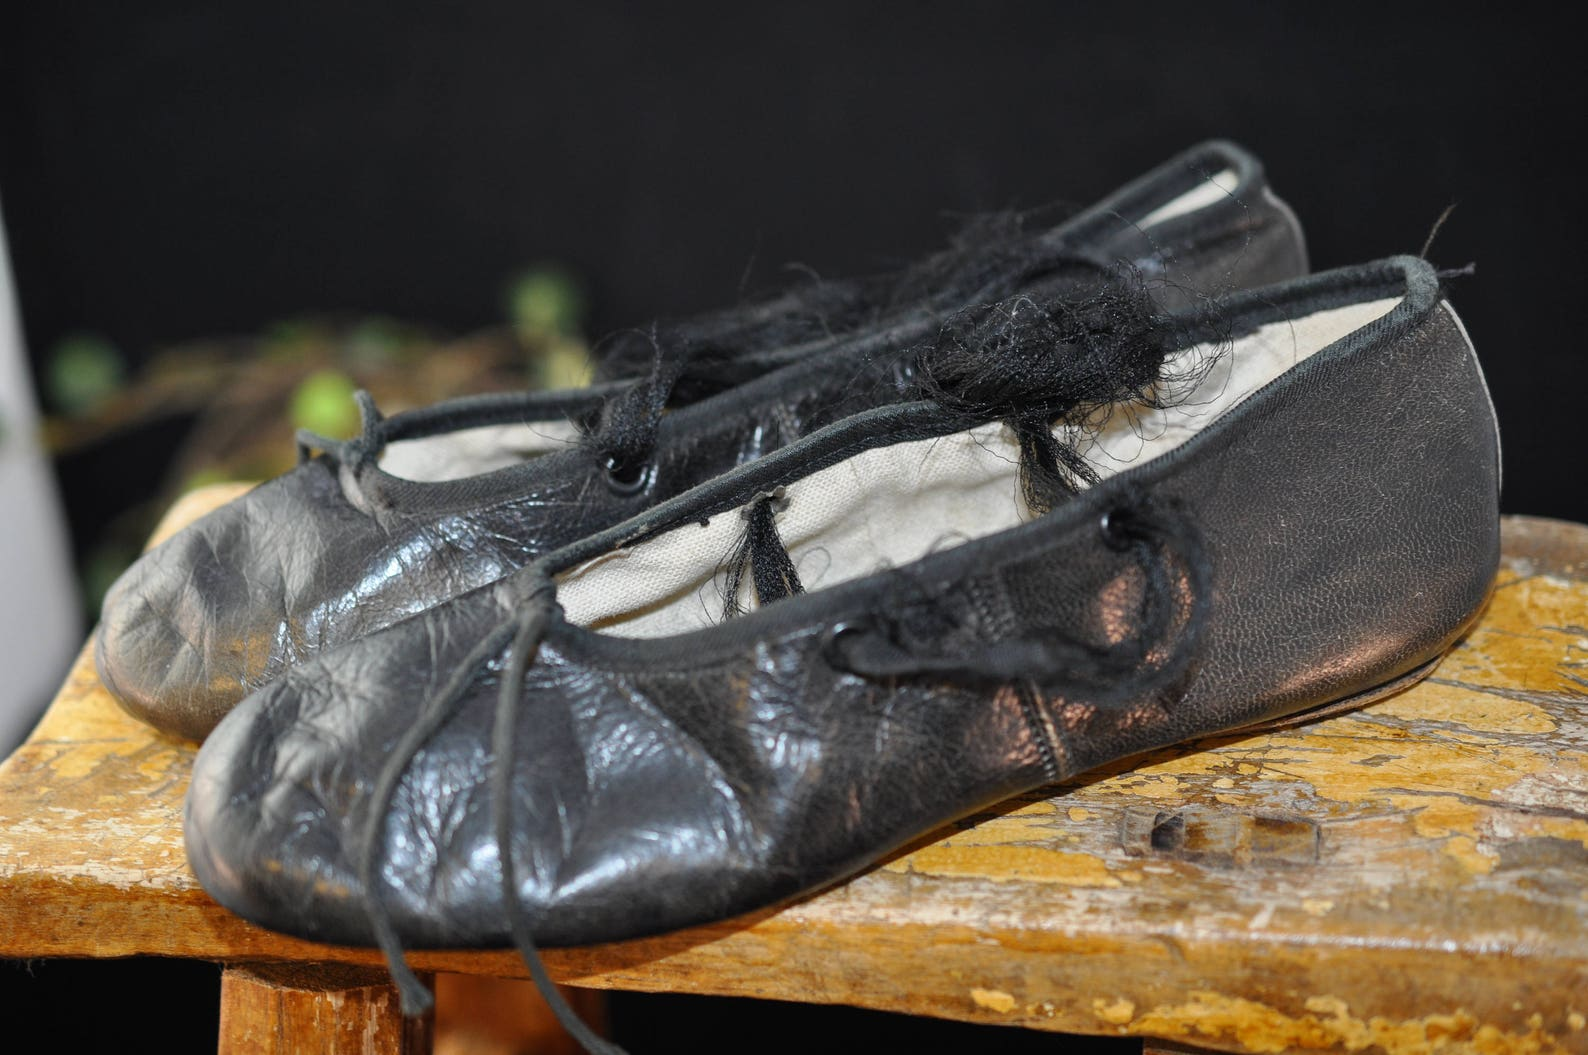 vintage leather ballet shoes, 1950's antique shoes, children clothing, size 13 1/2, great for display, leather bottom, black